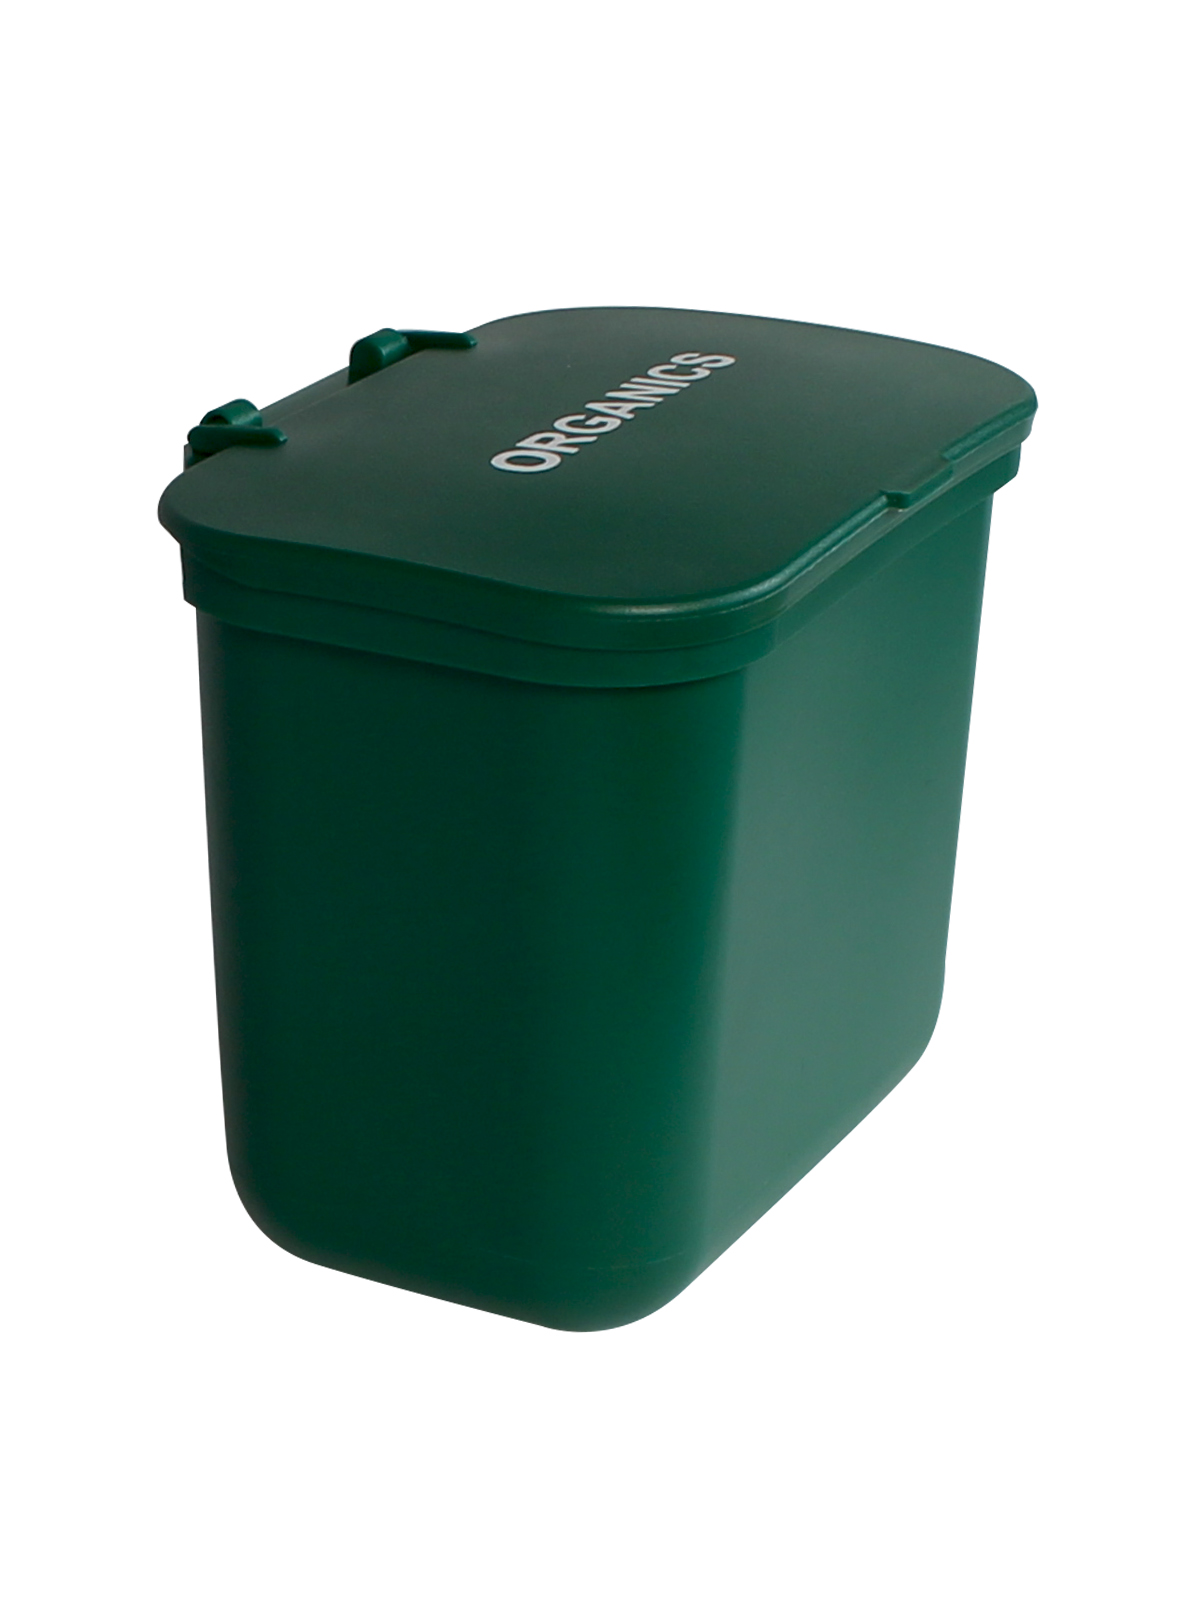 KIT HANGING WASTE BASKET W/ LID - GRN